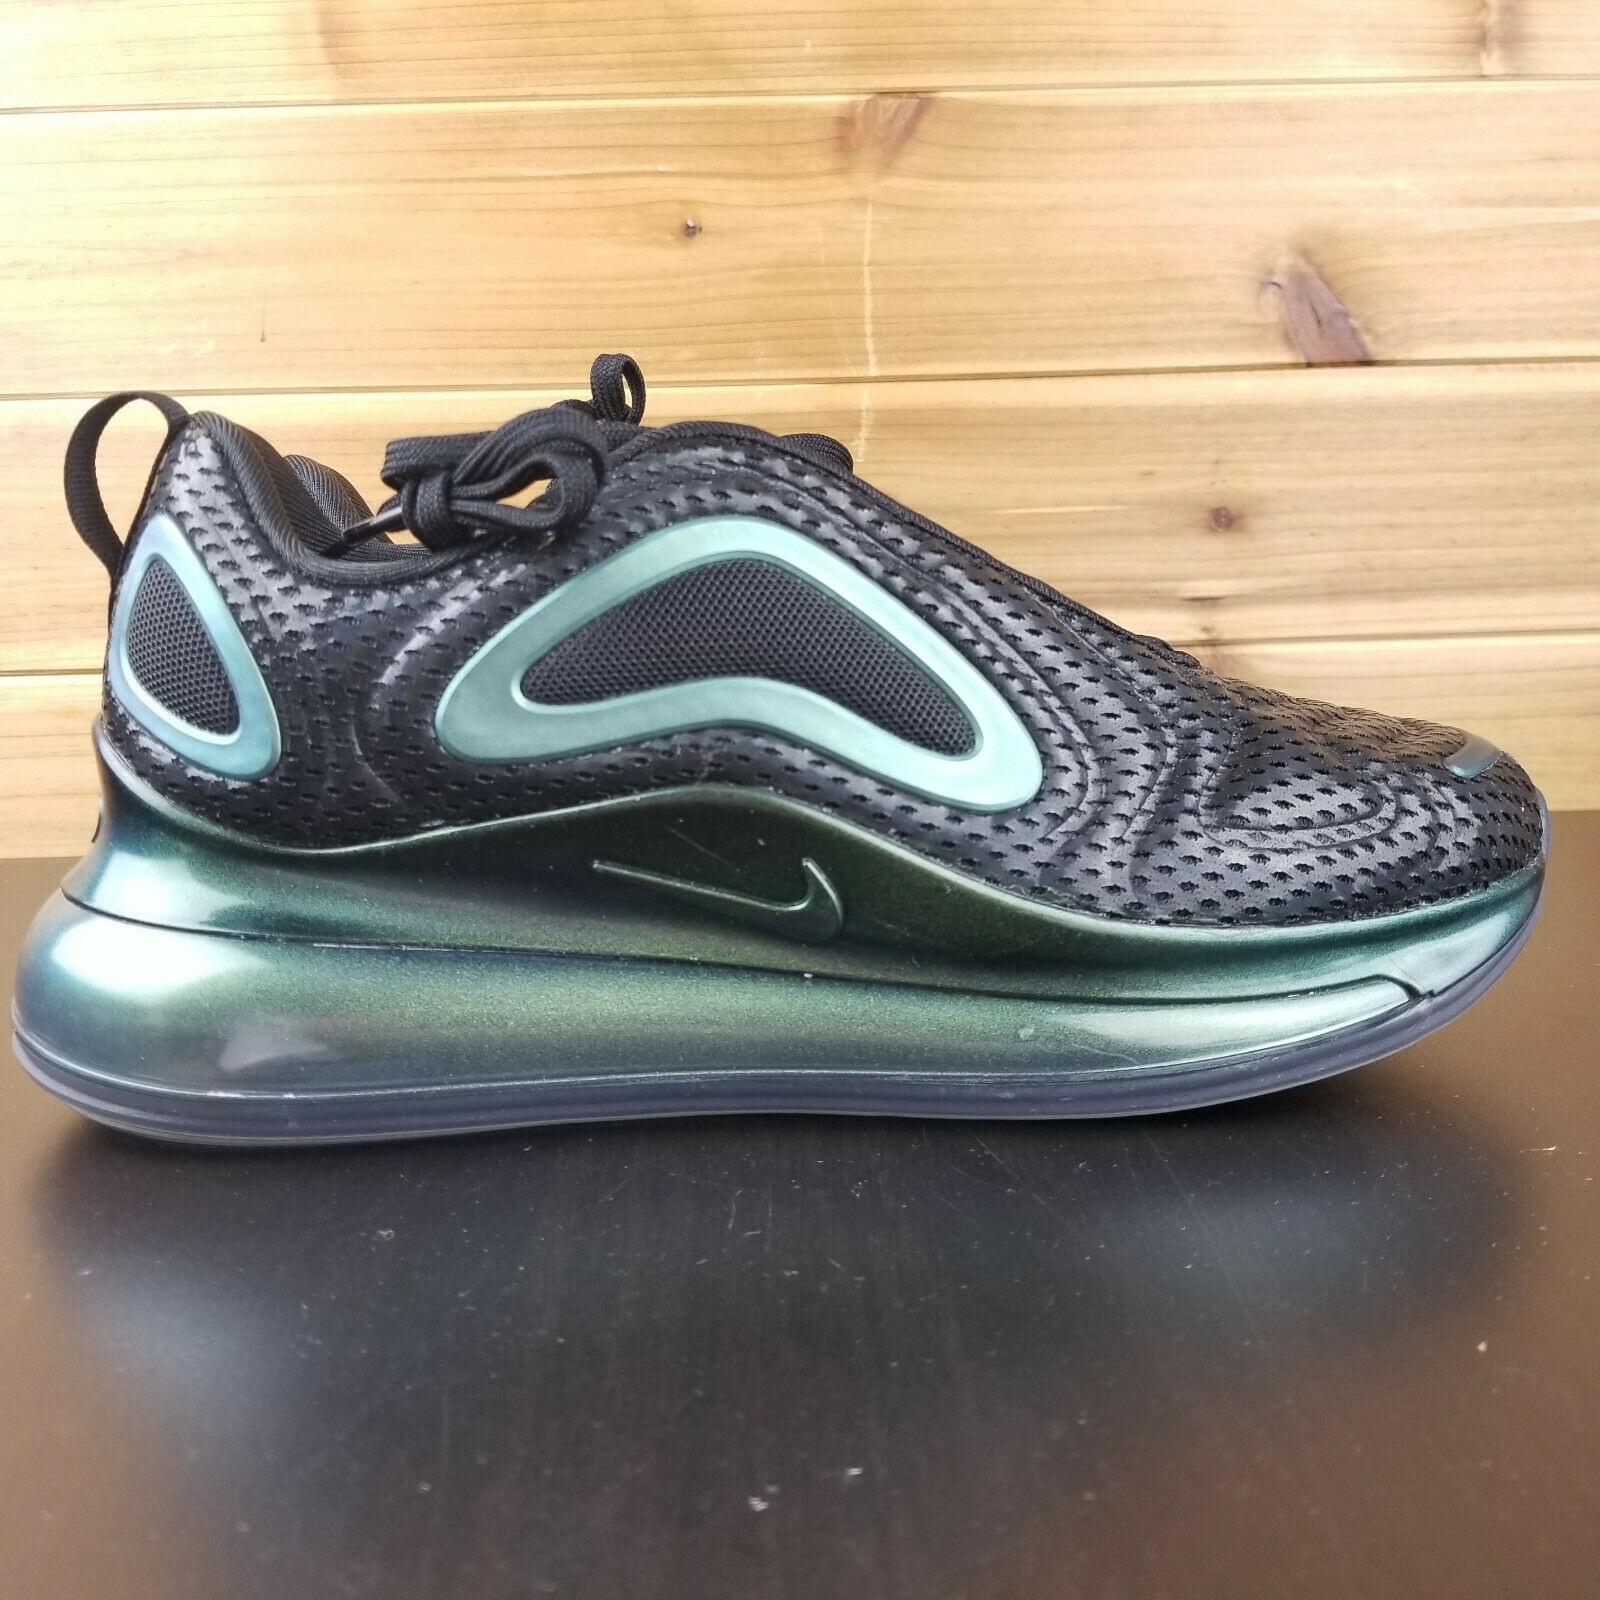 Nike Air Max 720 Throwback Future Black Anthracite AR9293 002 Womens Size 8